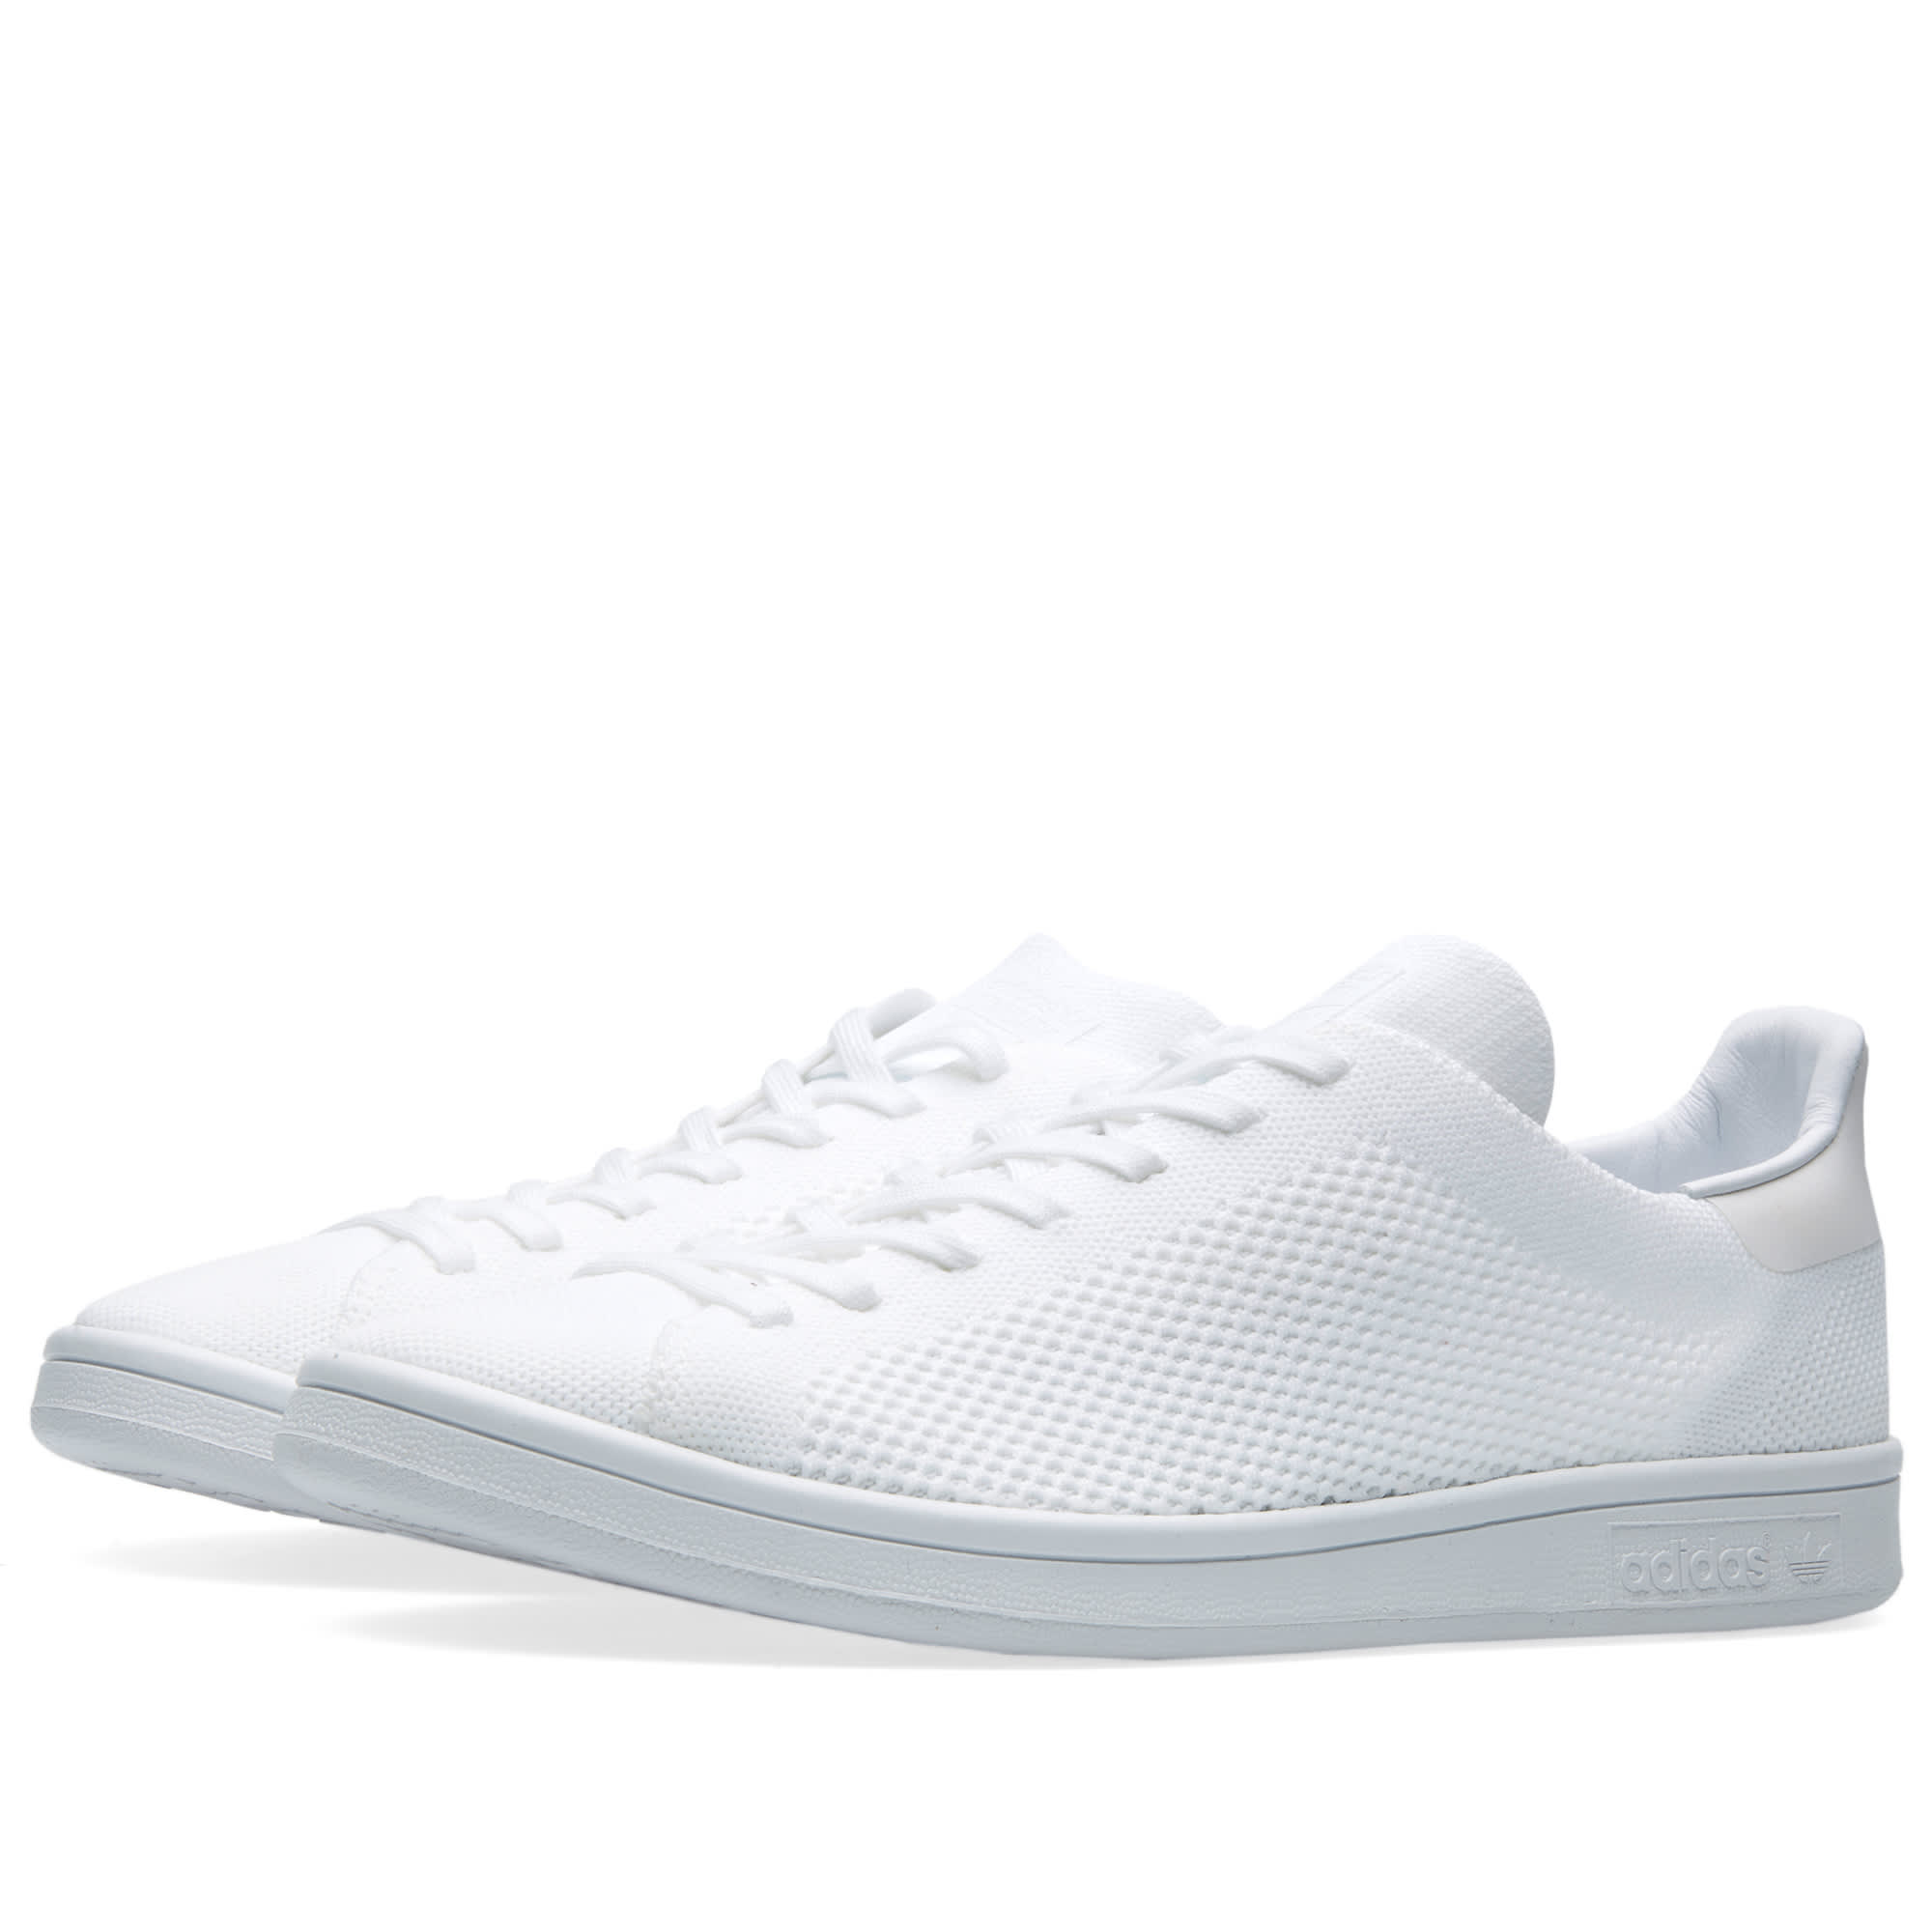 huge discount be8be c8e5a Adidas Stan Smith Primeknit